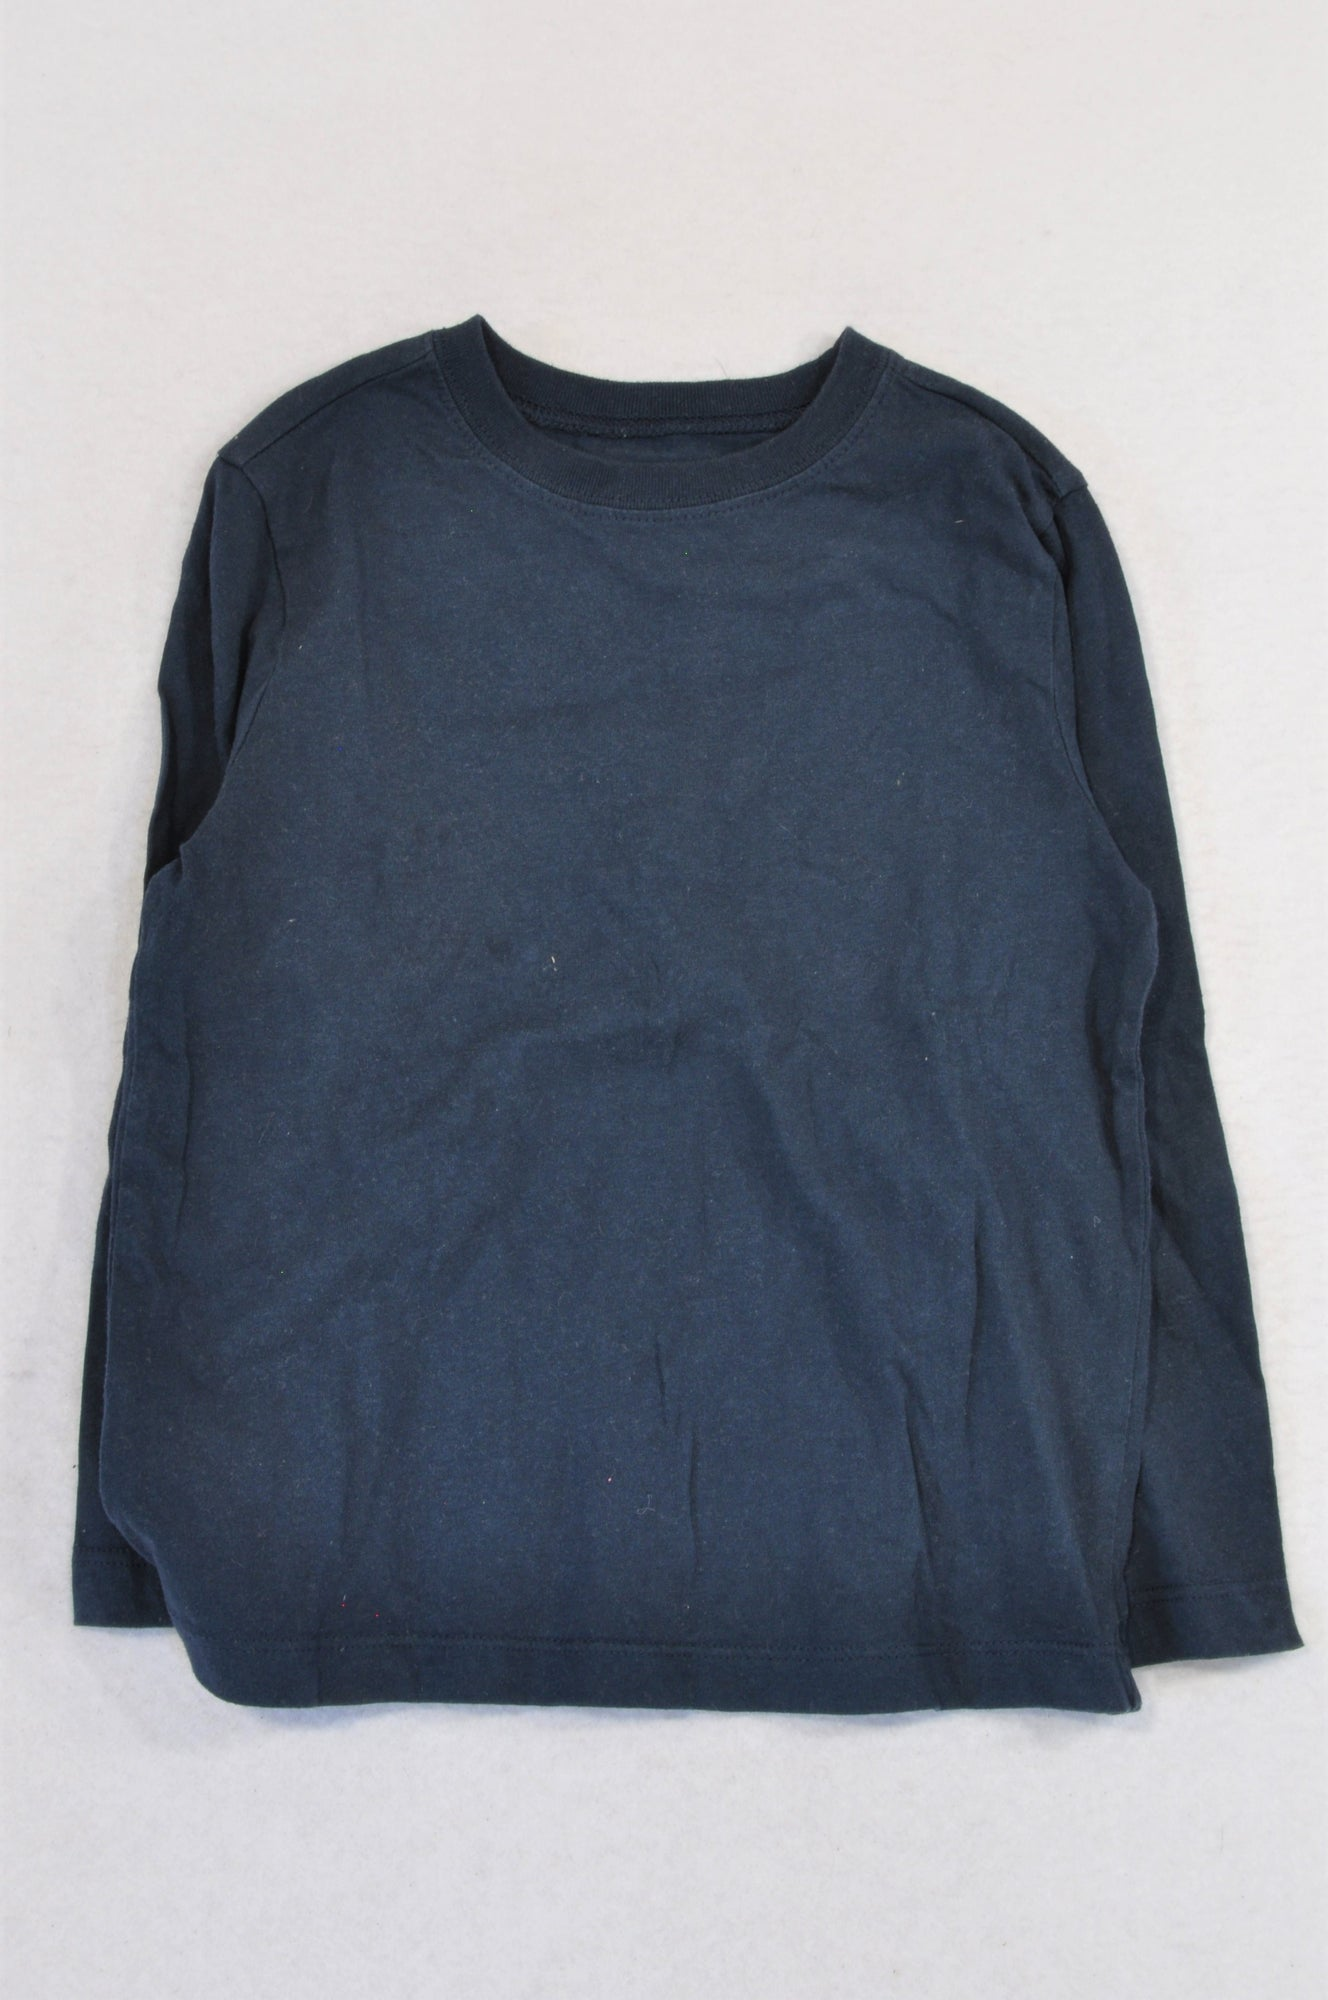 Woolworths Basic Navy Long Sleeve T-shirt Unisex 4-5 years